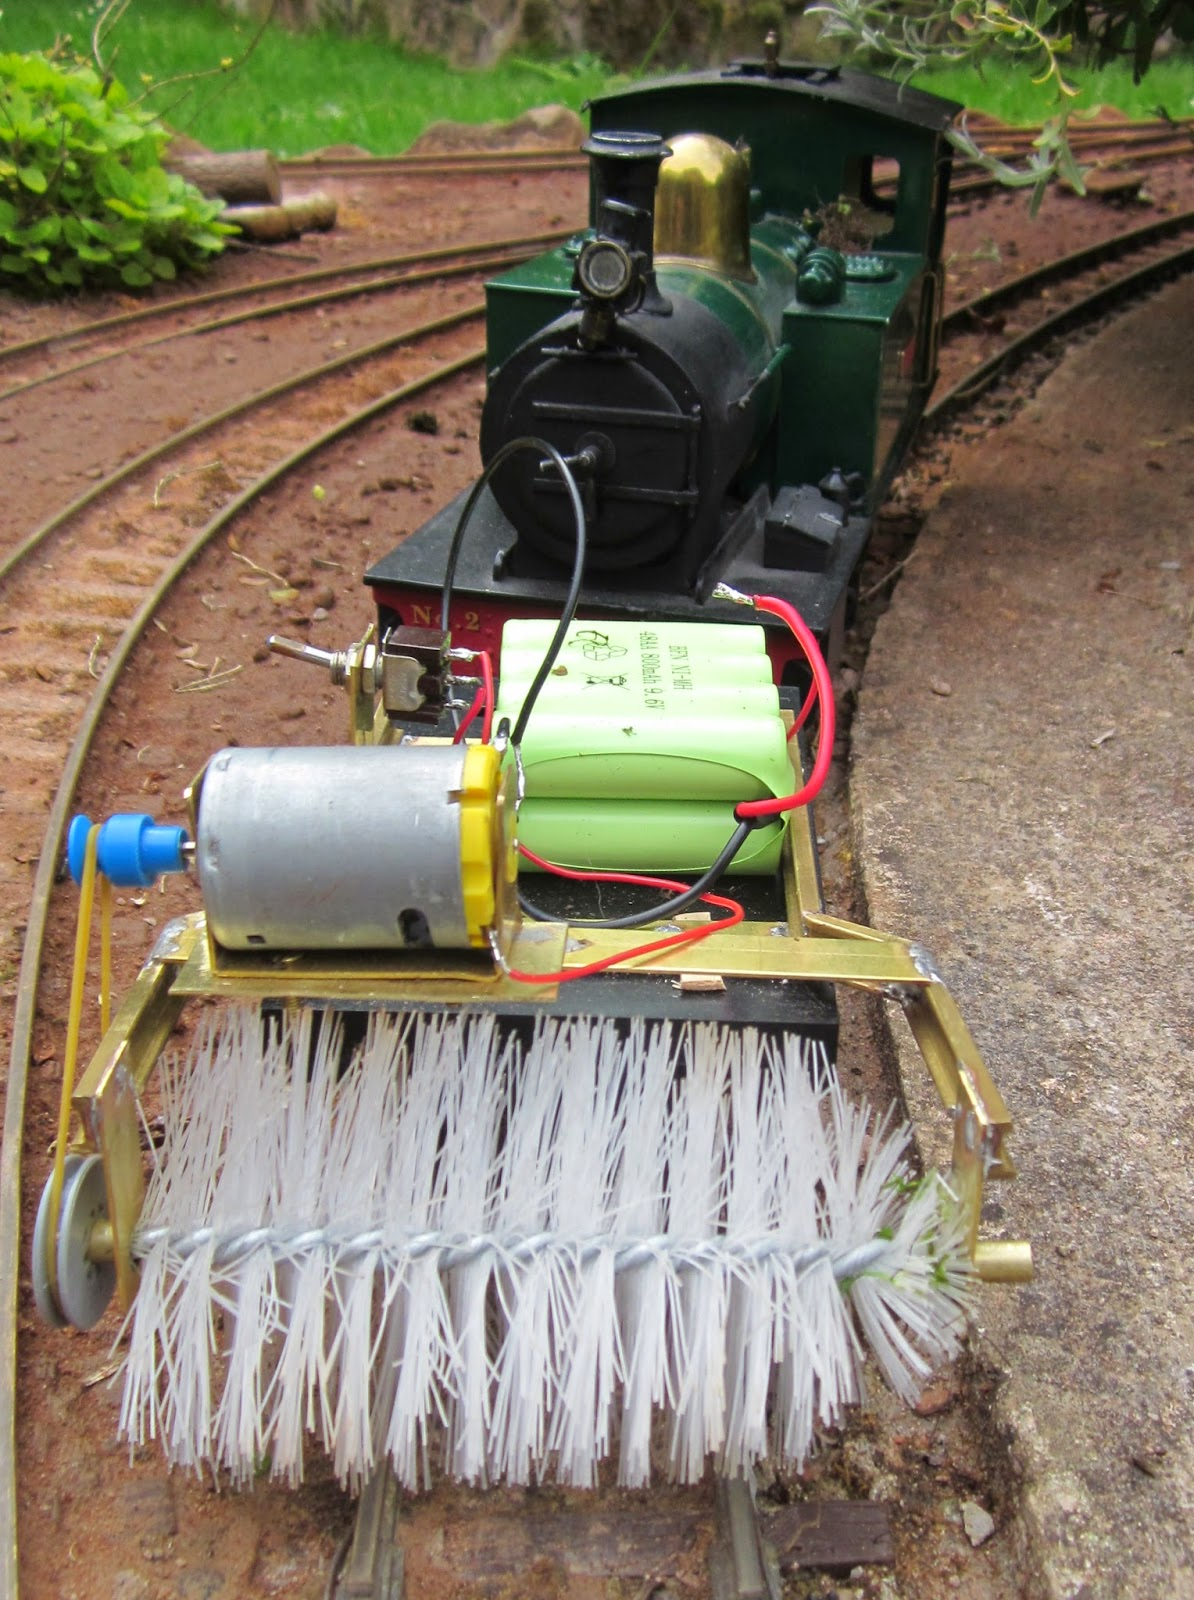 hight resolution of i ve found that the brush is a little too wide which means that on some stretches of track the pulley becomes entangled in the undergrowth